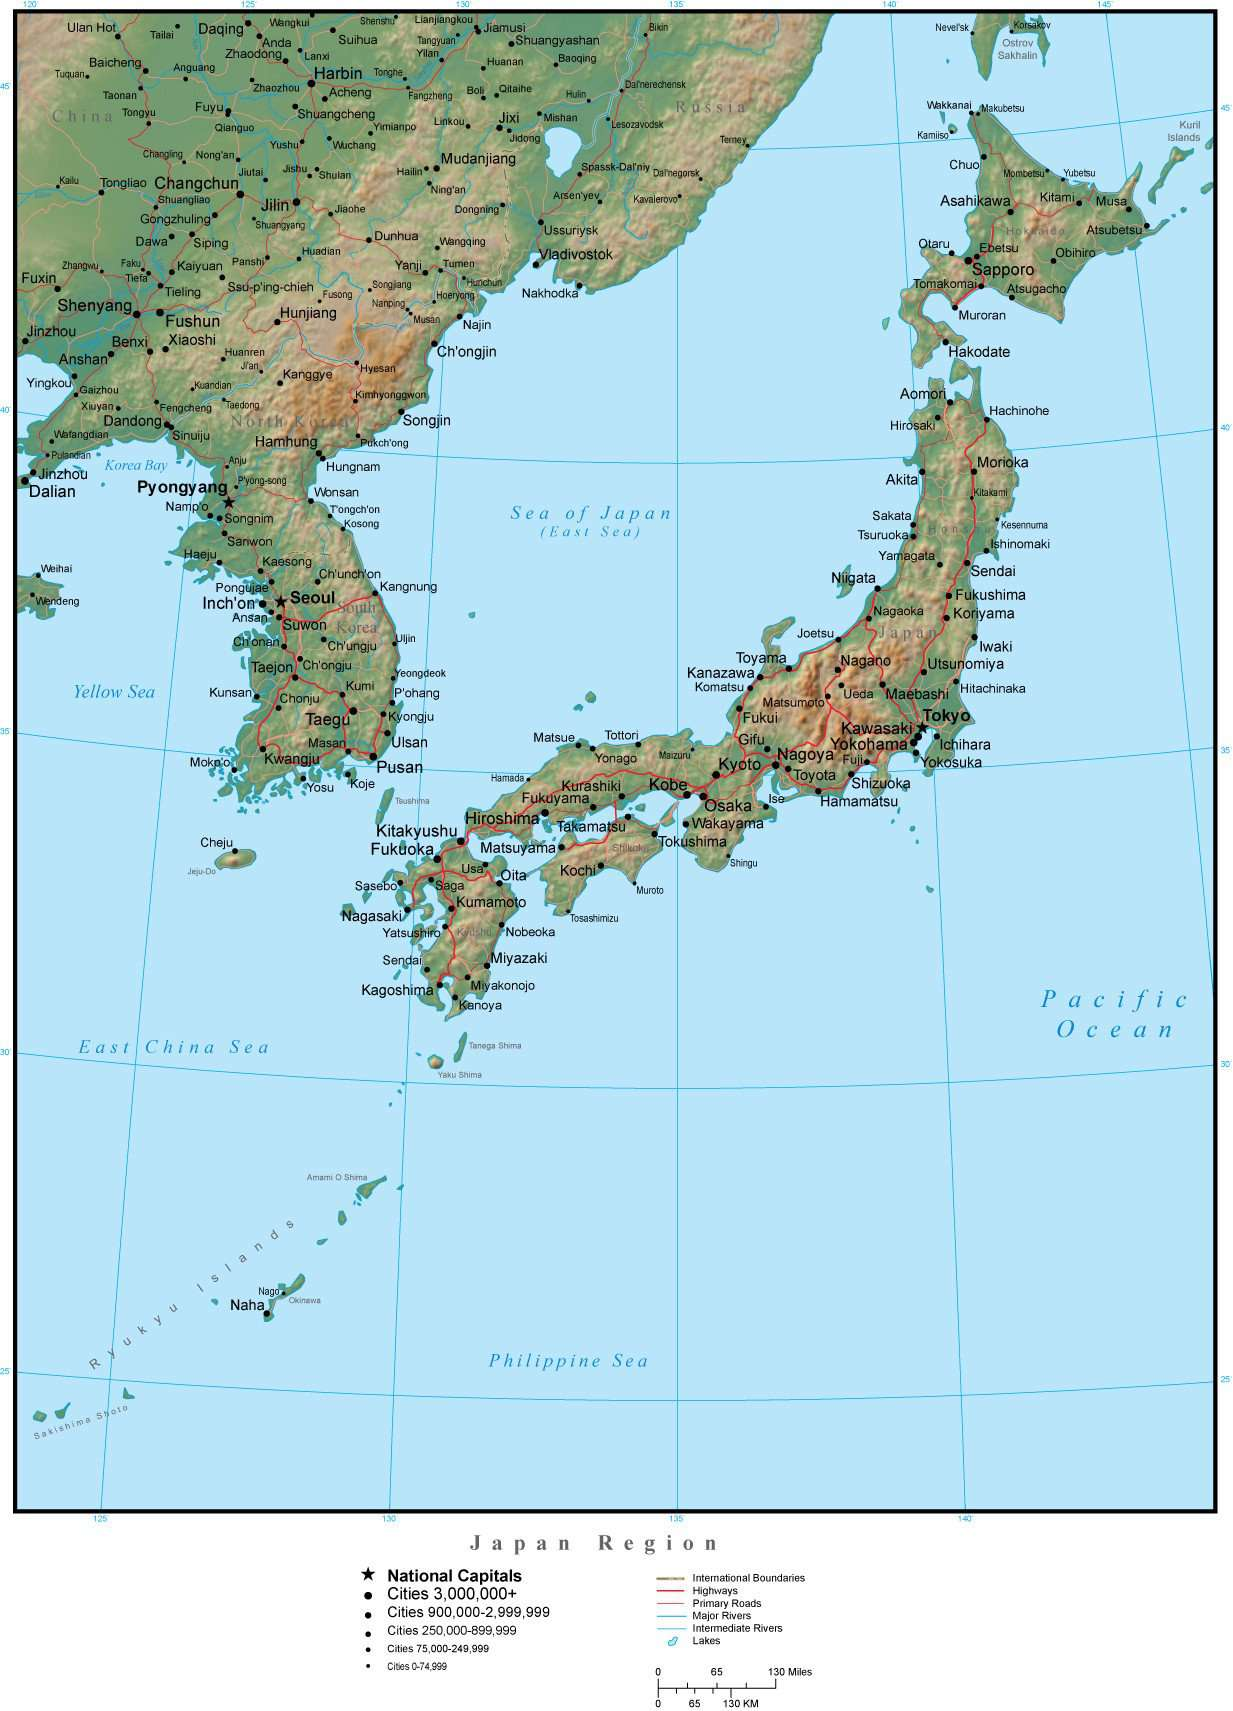 Japan Region Terrain Map In Adobe Illustrator Vector Format With